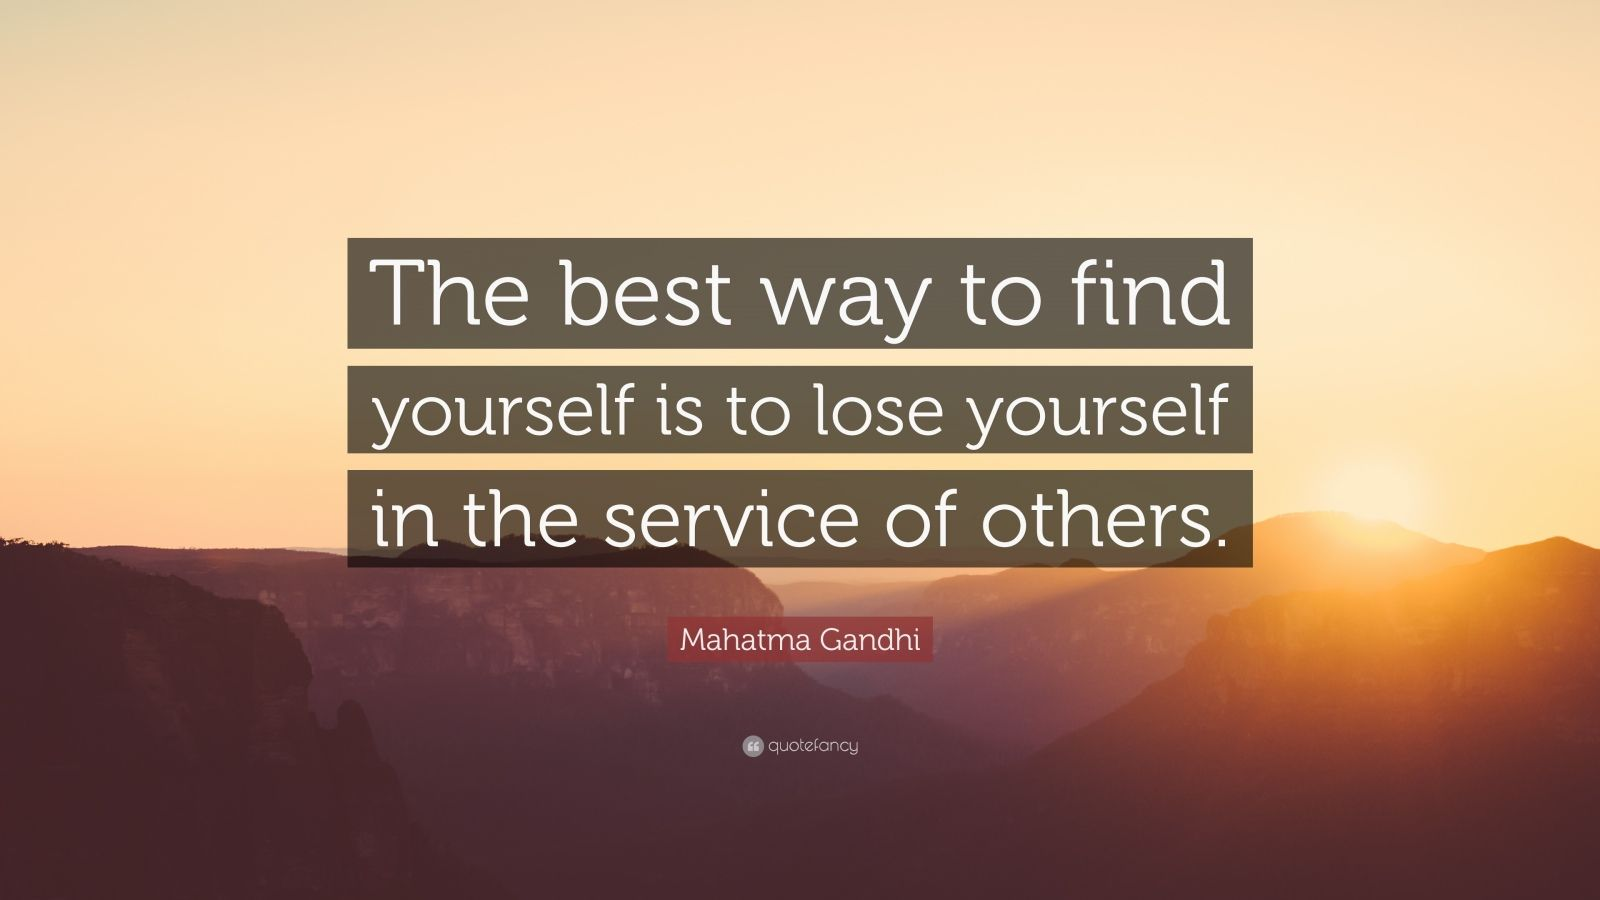 The Best Way to Find Yourself Gandhi Quote